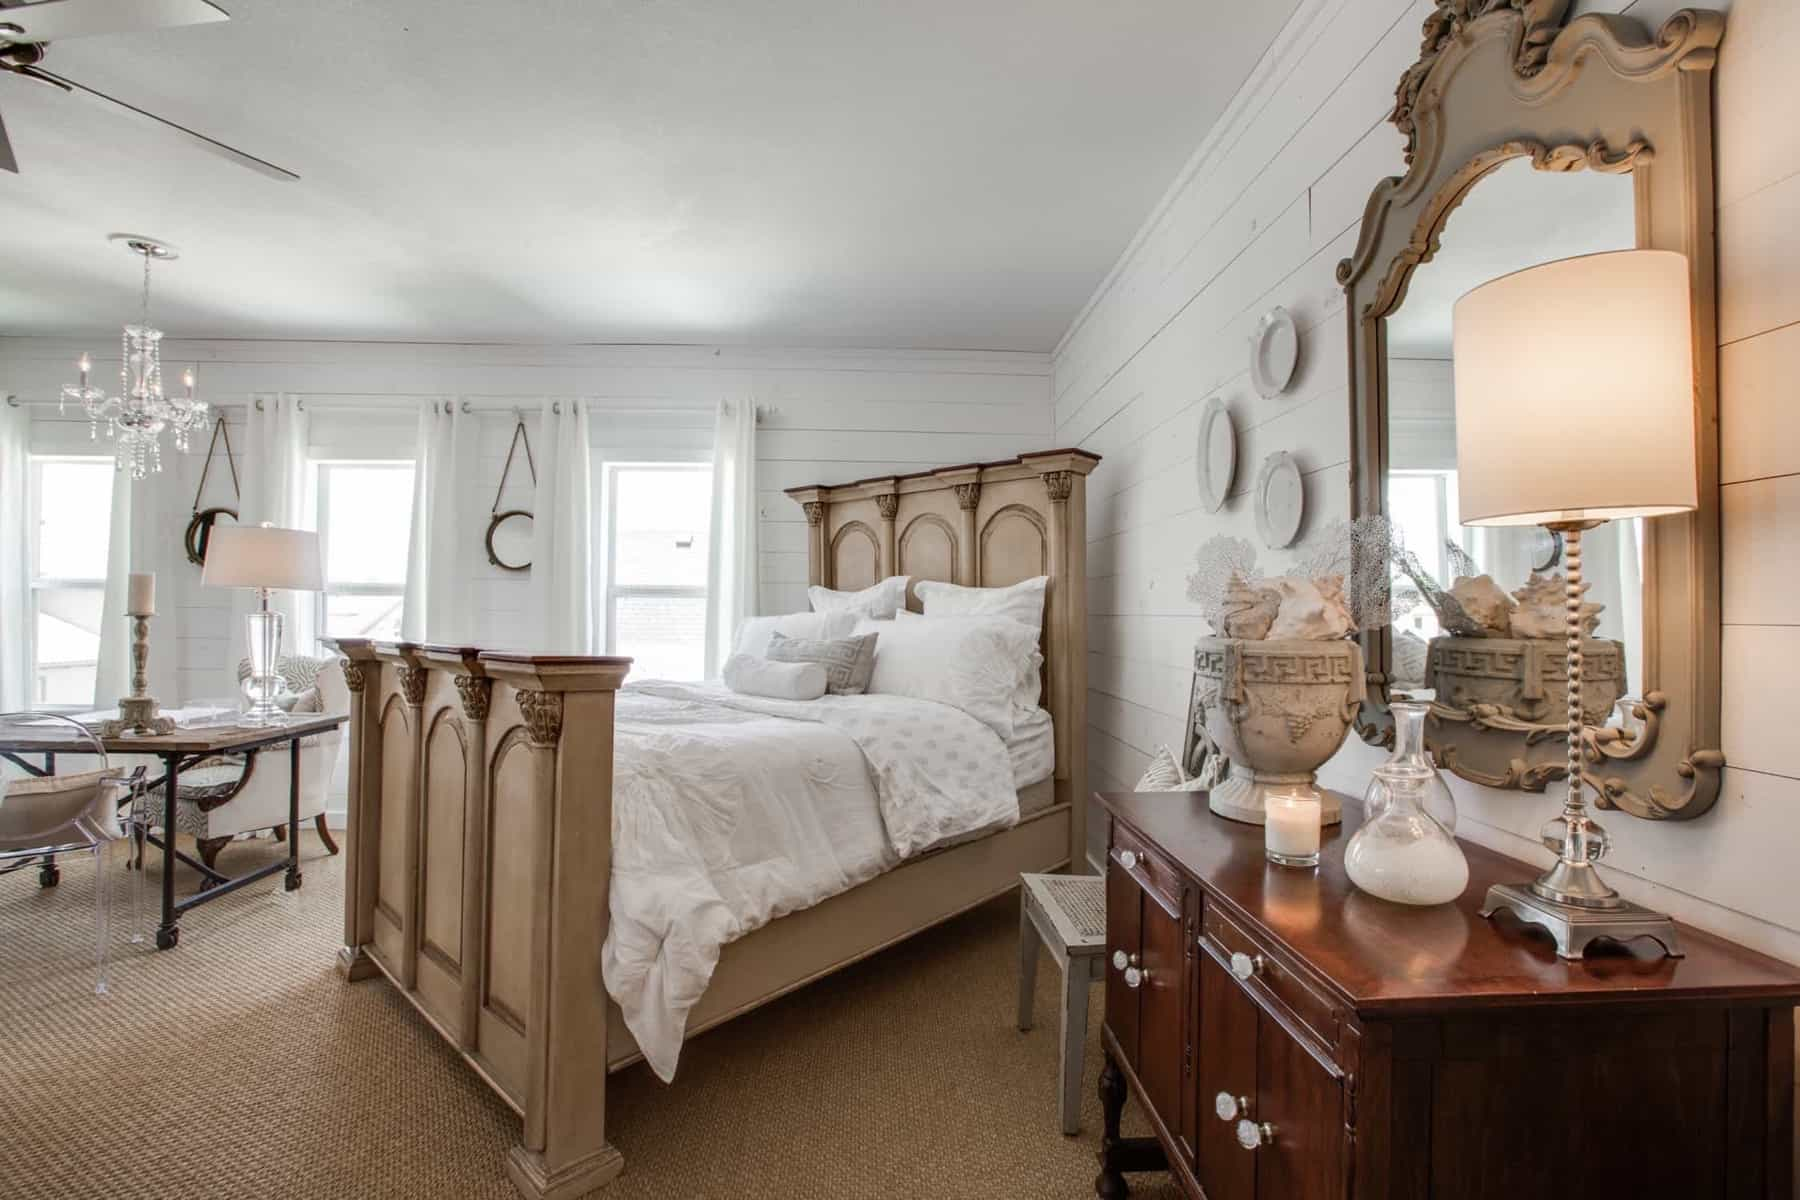 Featured Image of Small Studio Bedroom With Coastal Vibe